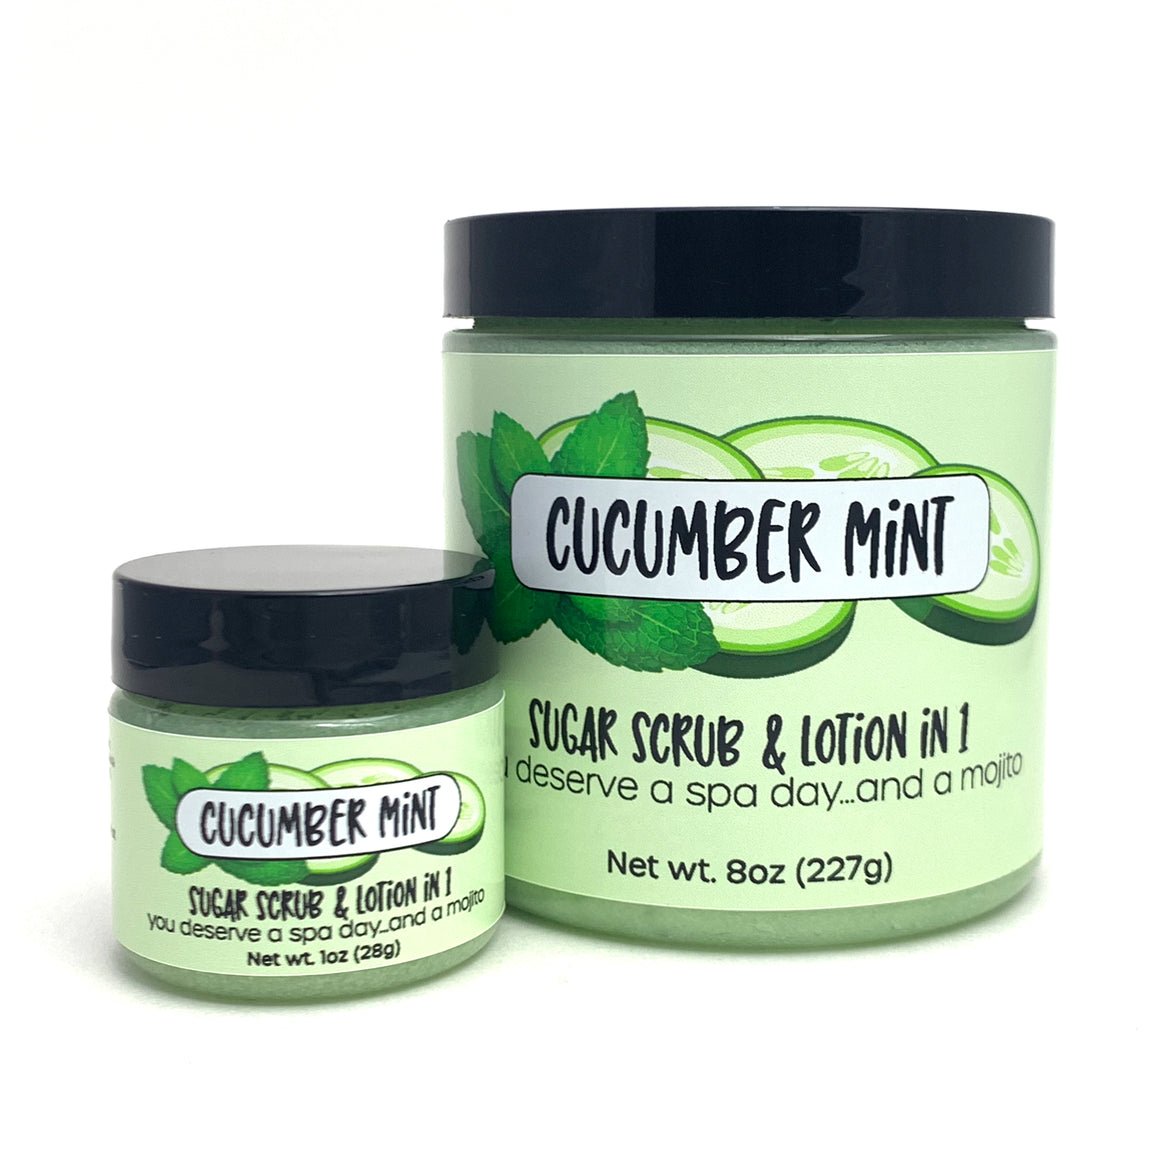 Cucumber Mint Sugar Scrub and Lotion in One